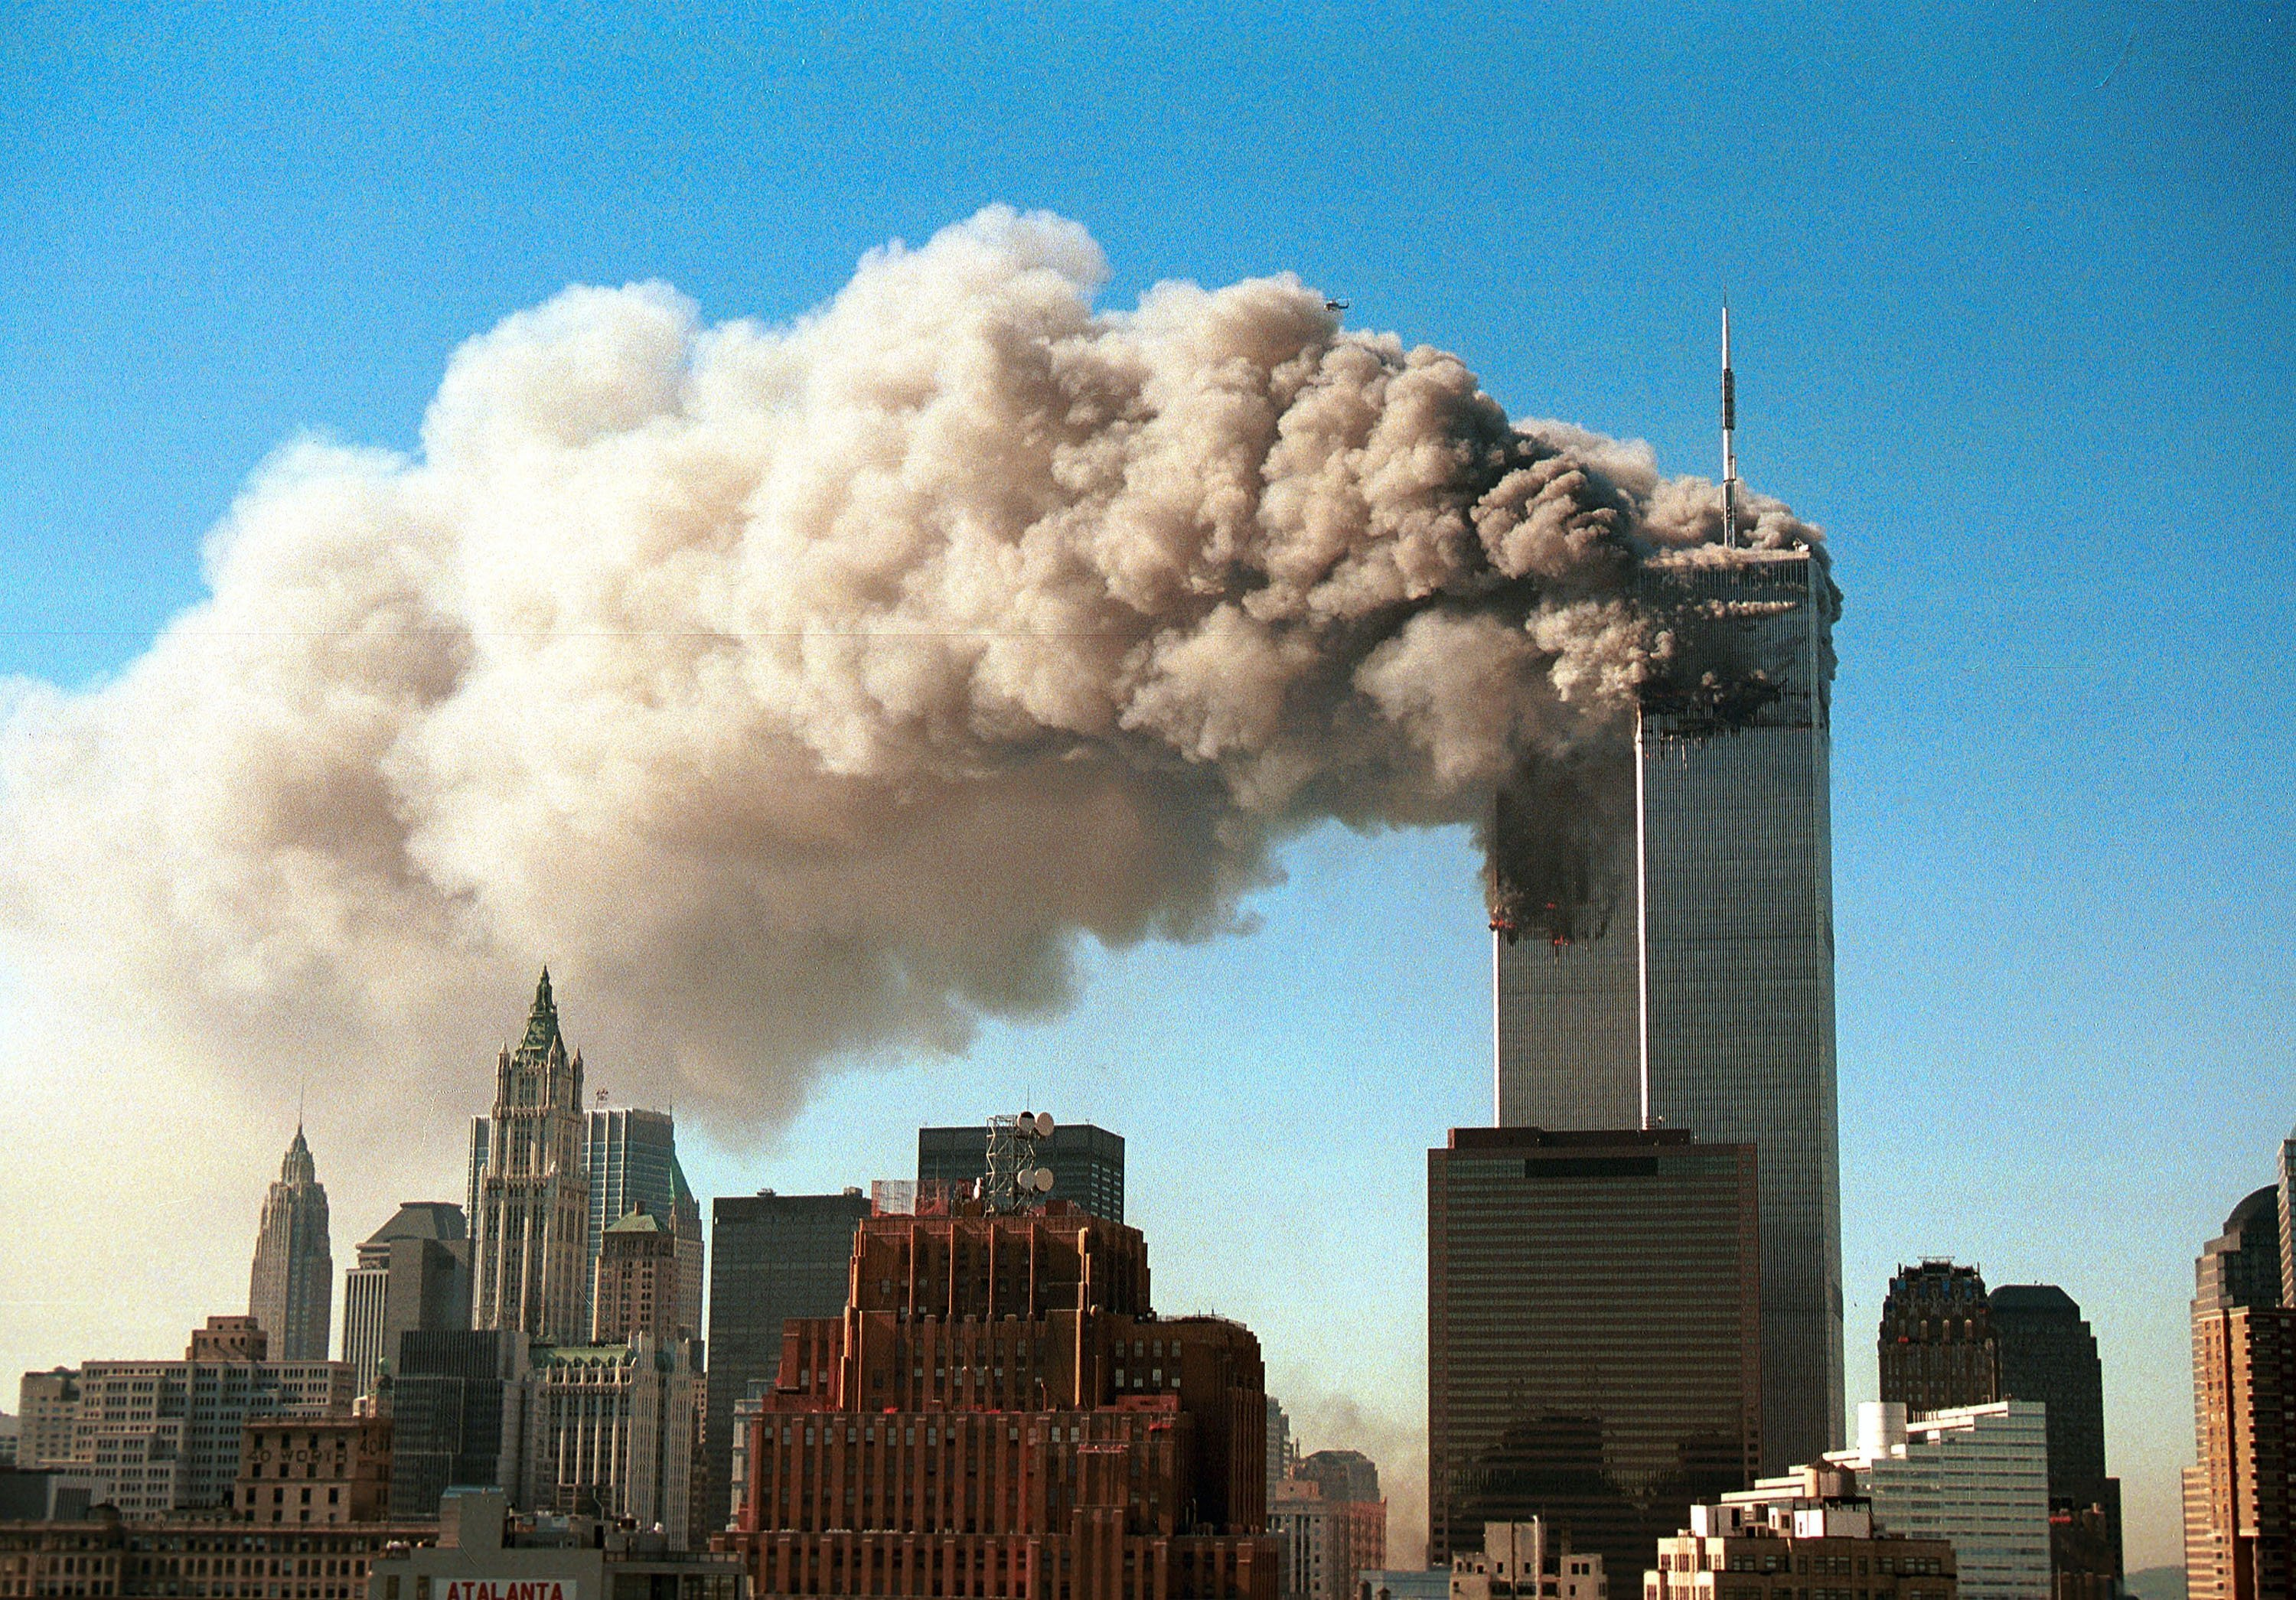 The World Trade Center twin towers following the terrorist attacks in New York City, 2001 | Photo: Getty Images